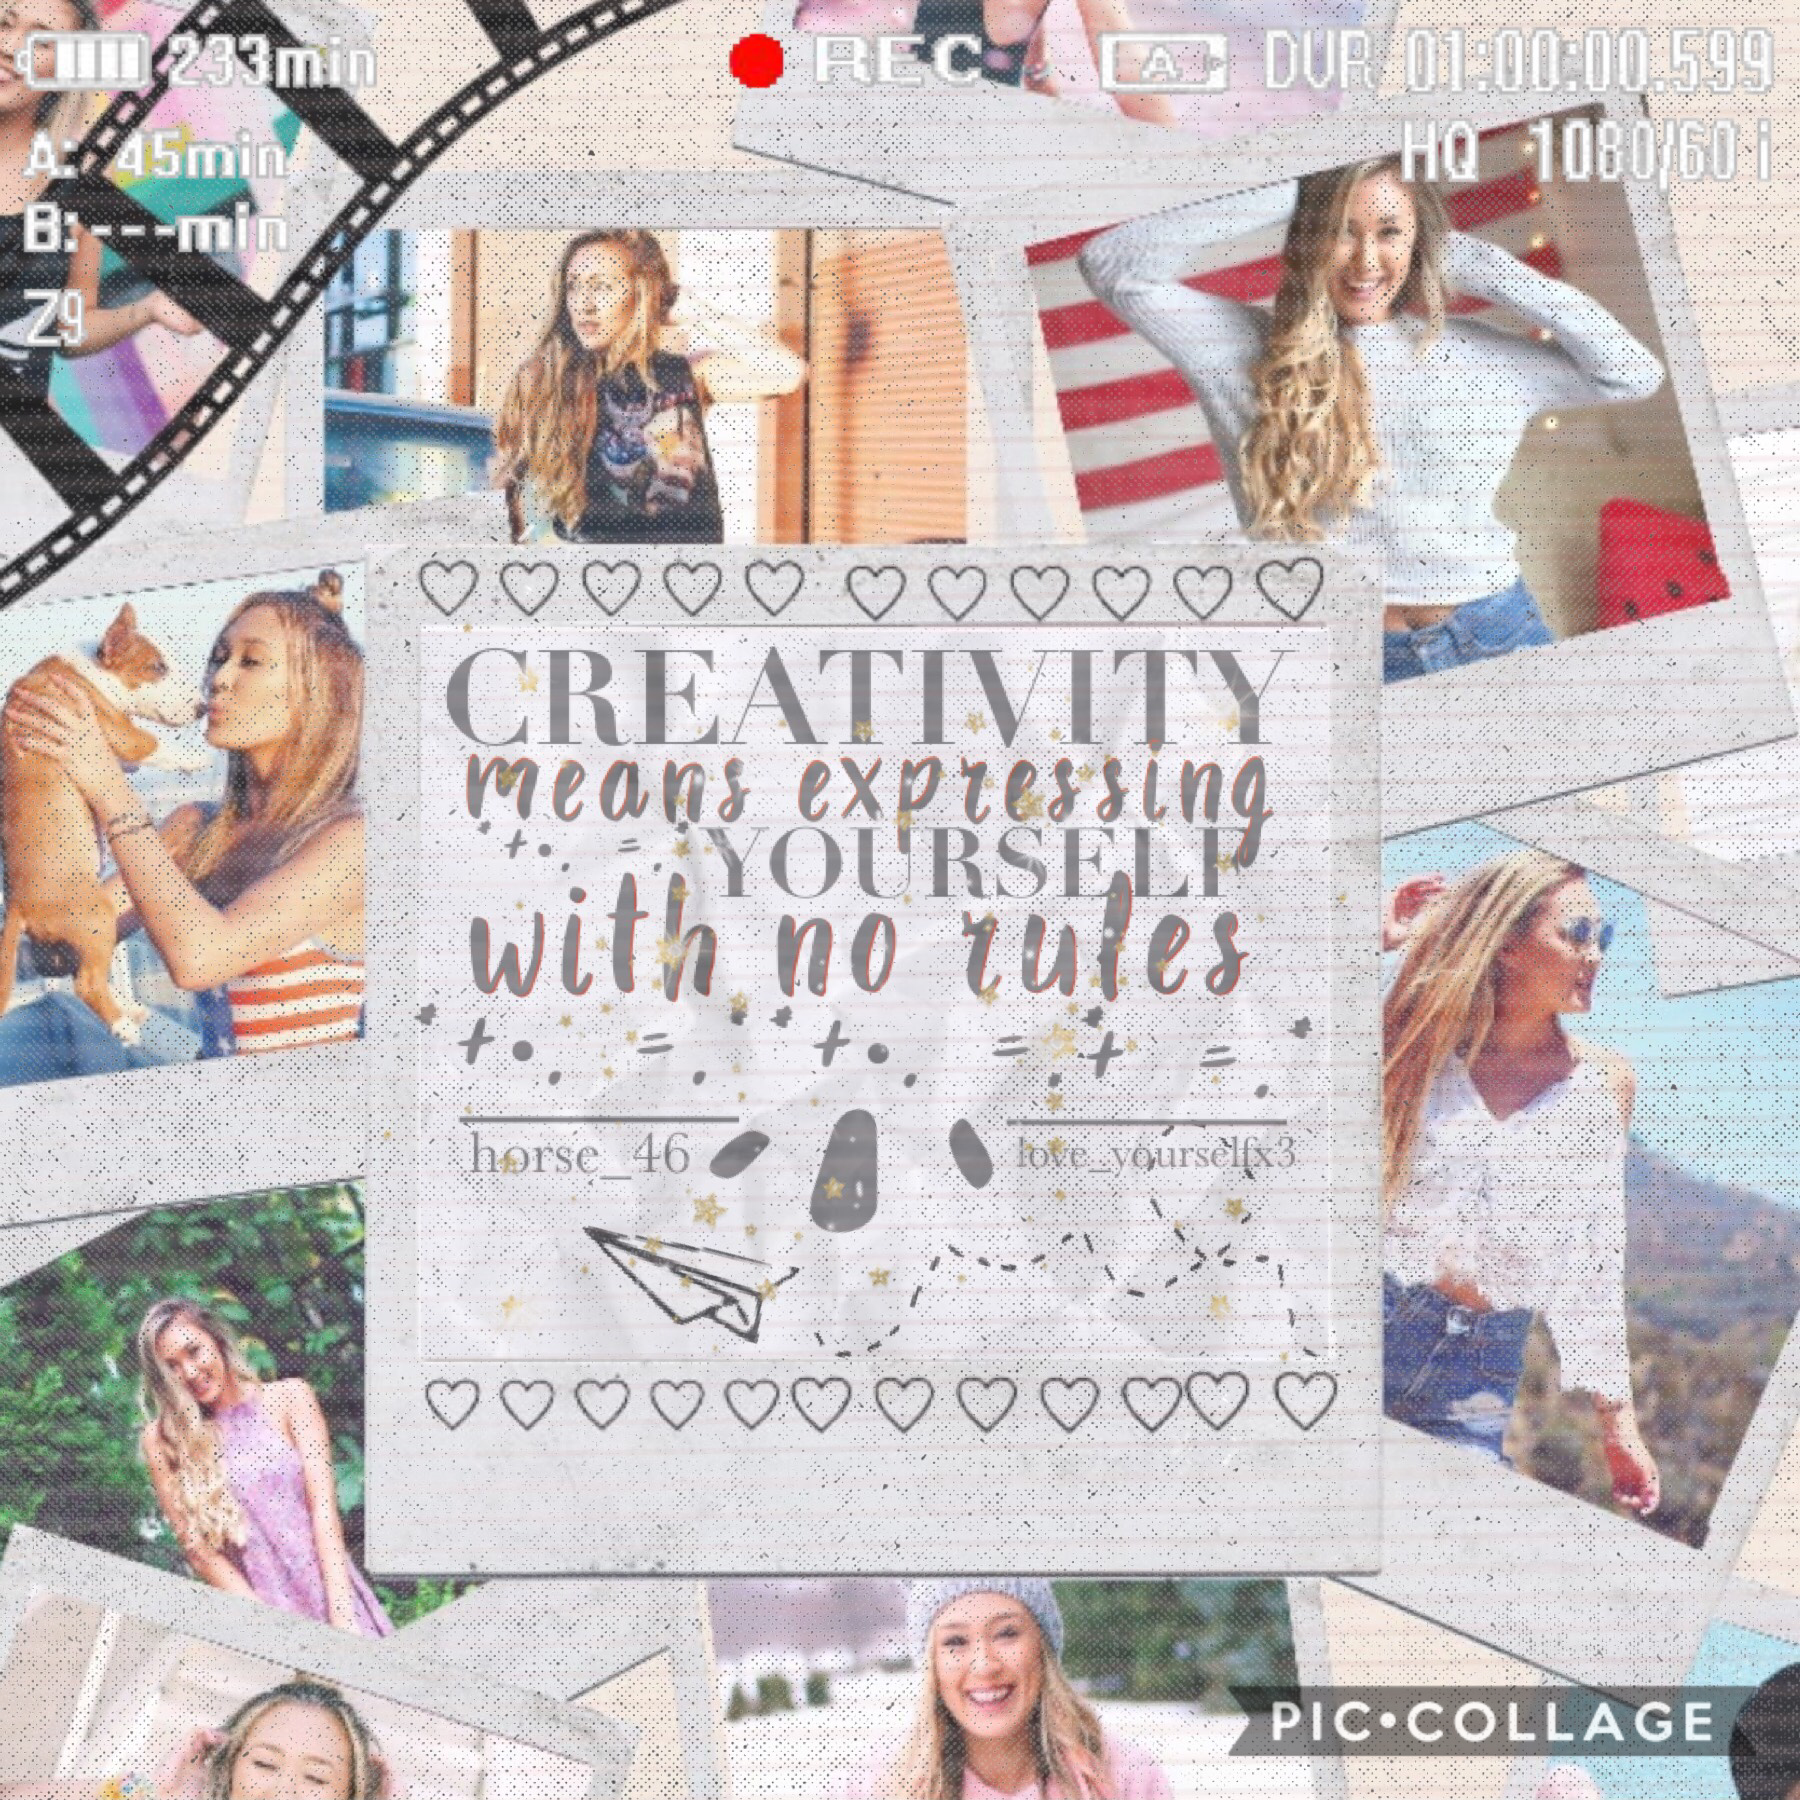 Collab with horse_46! (Tap!!!)  I'm not v happy with my collages lately so I might be more inactive :pp also if you have any backgrounds pls remix hemm I'll give credit if I use them x  qotd: books or movies?